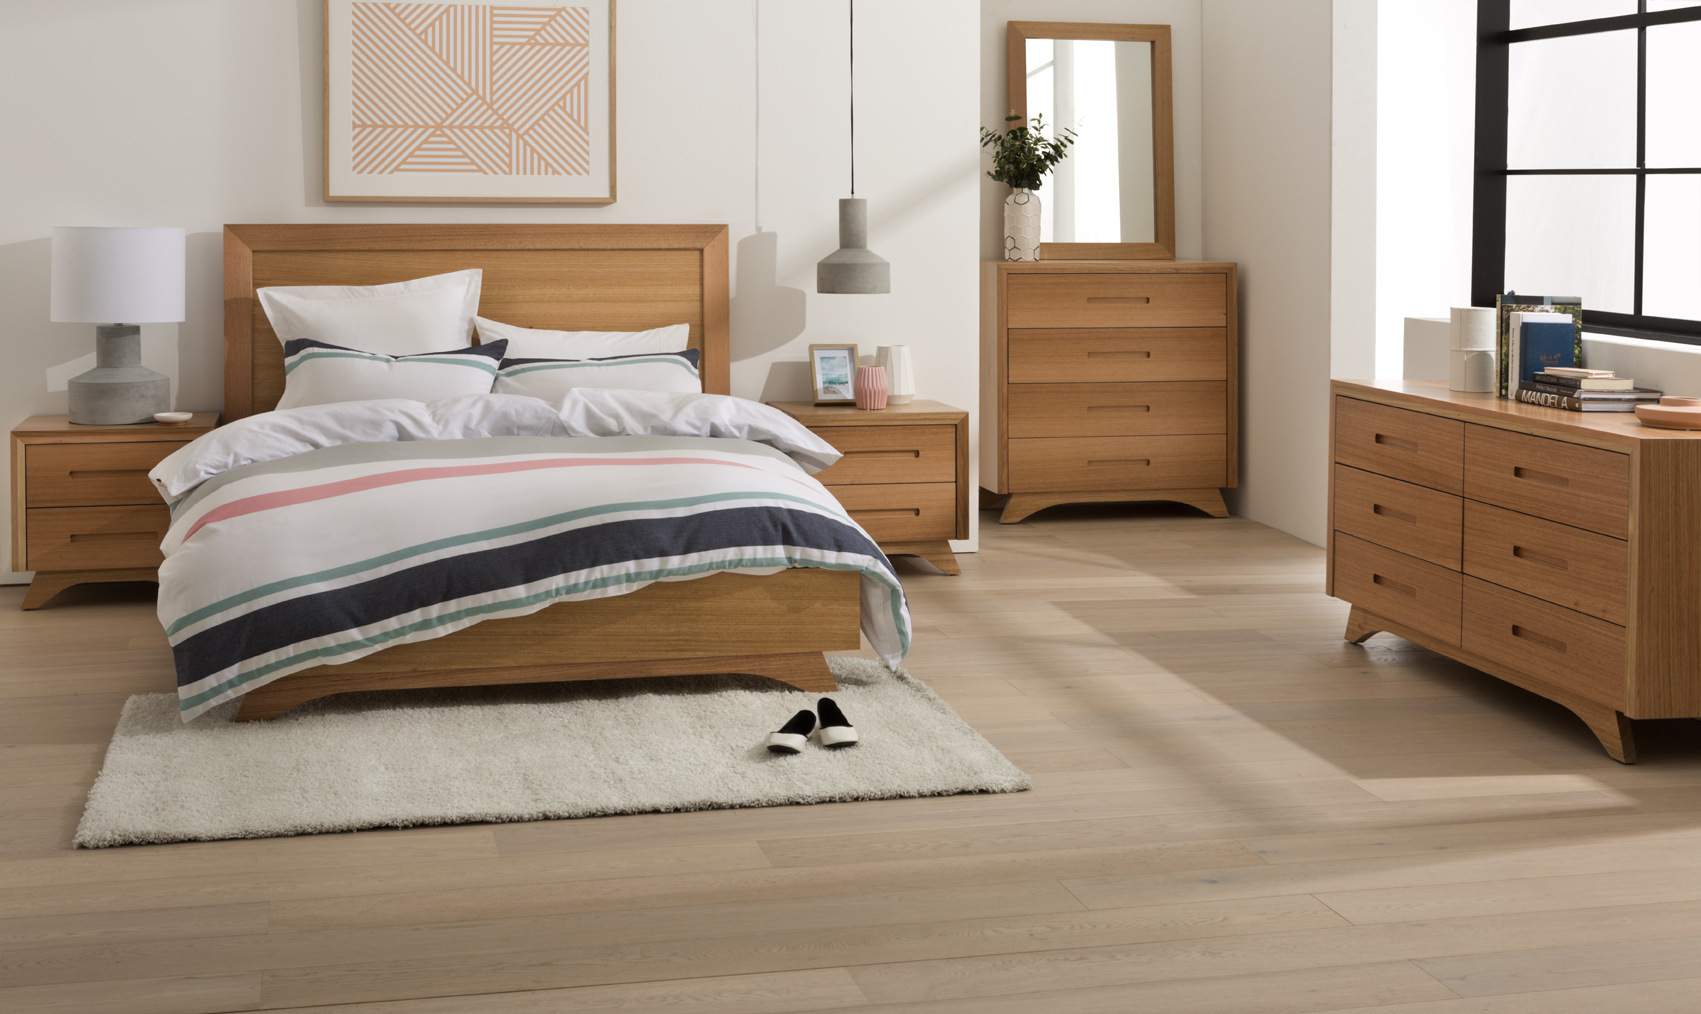 Photograph of Astra Furniture Avanti bedroom range crafted from solid Tasmanian Oak